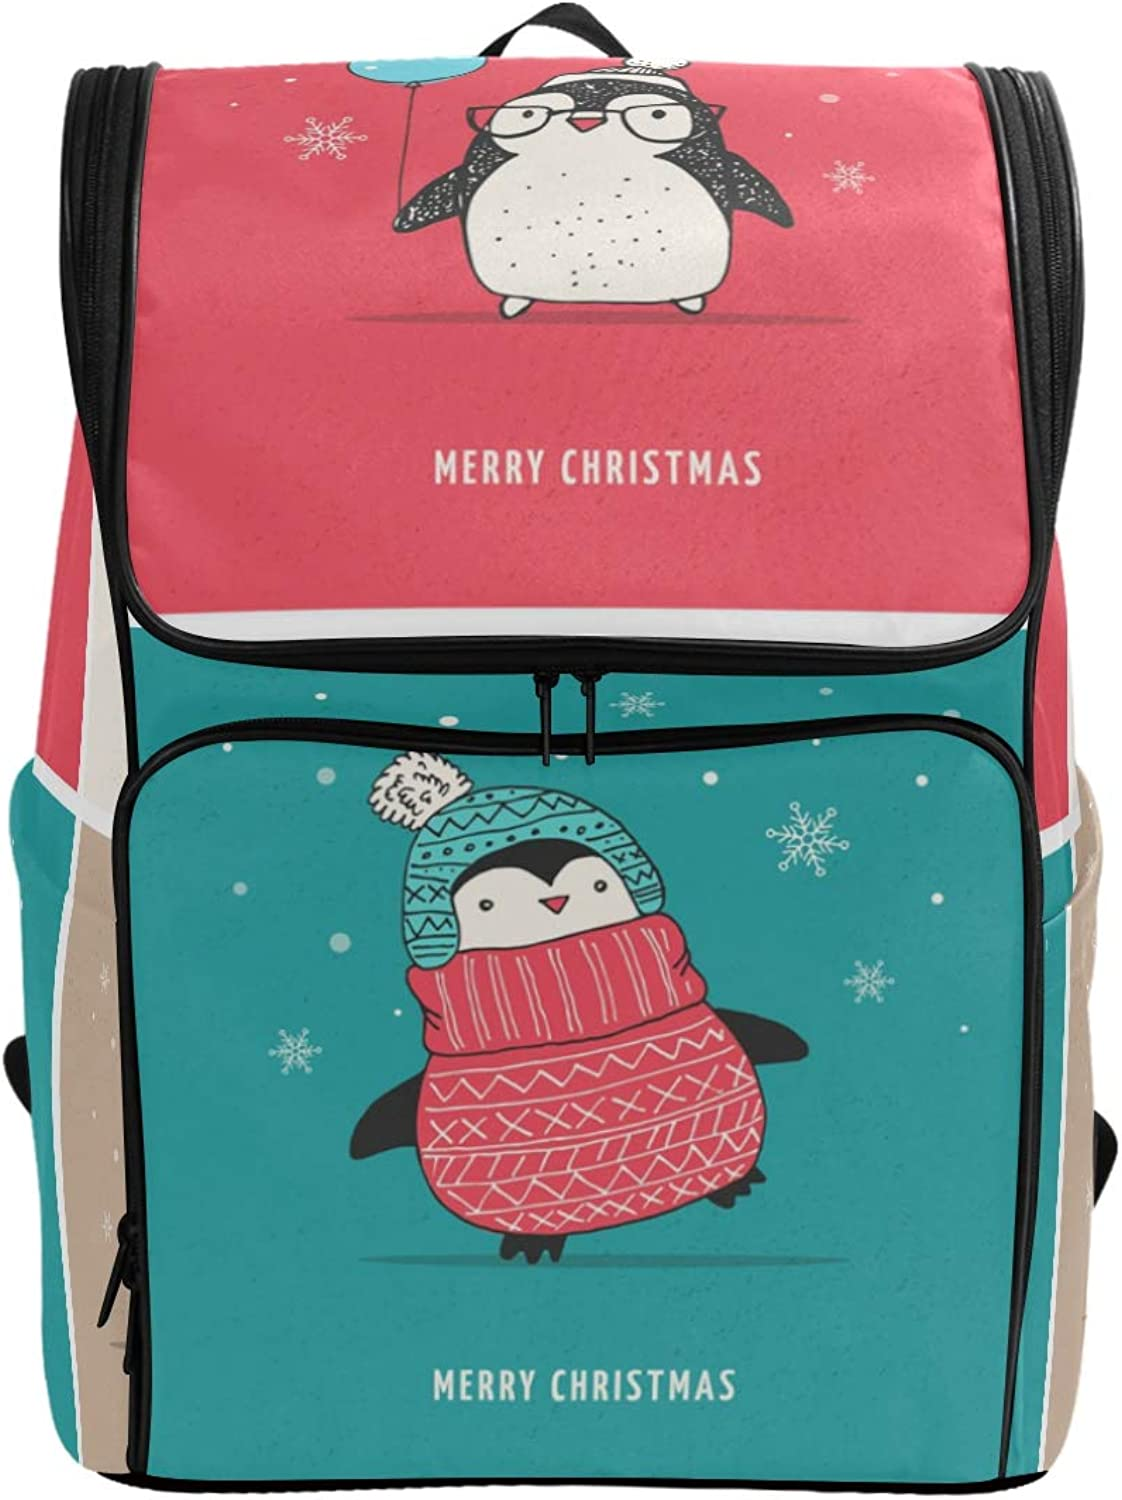 FANTAZIO Cute Penguins Merry Christmas Laptop Outdoor Backpack Travel Hiking Camping Rucksack Pack, Casual Large College School Daypack